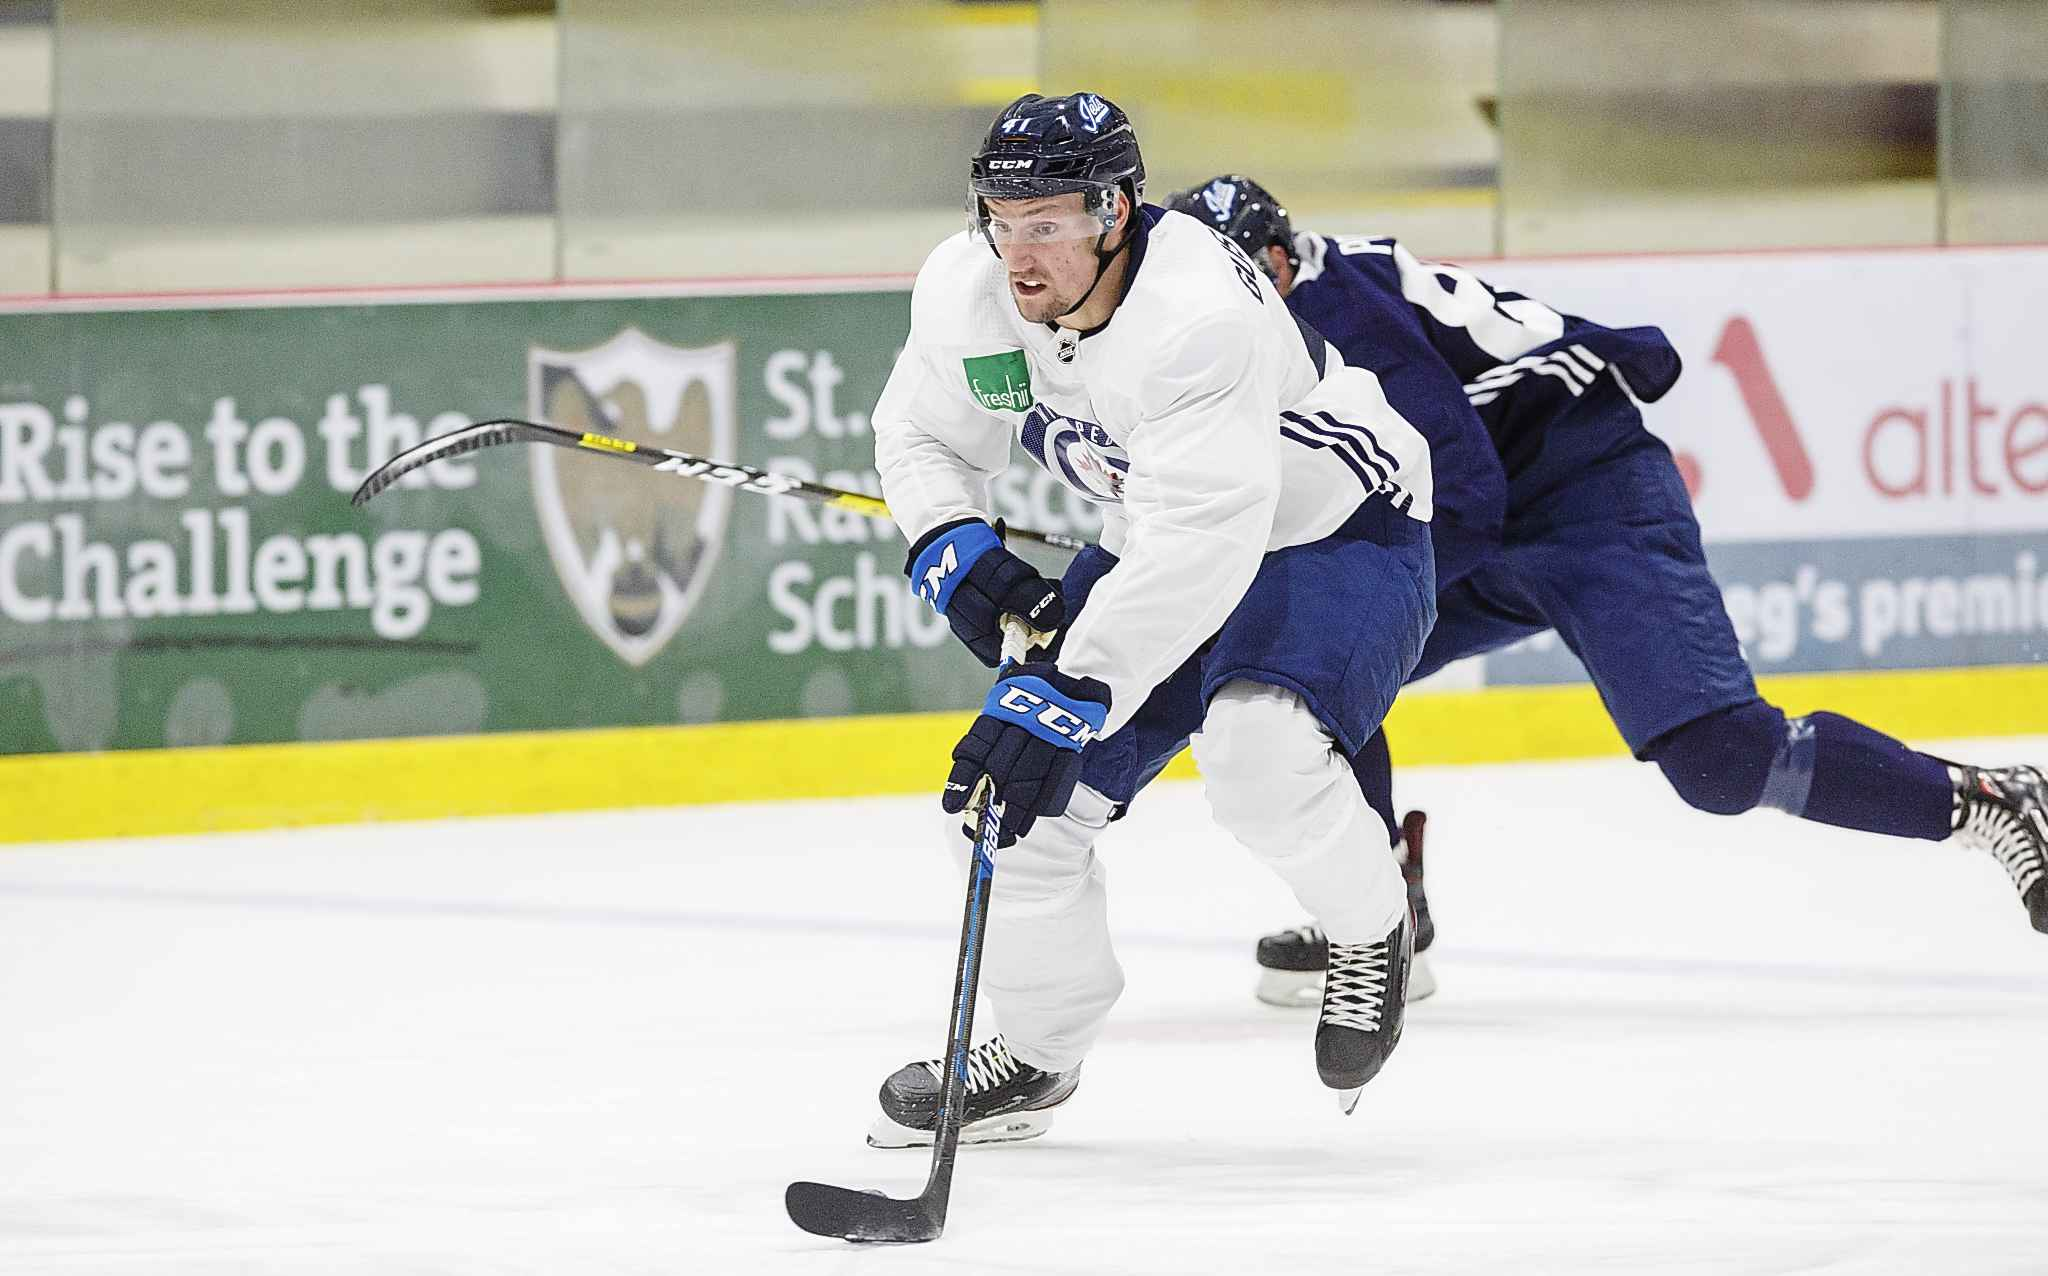 MIKE DEAL / WINNIPEG FREE PRESS <p/> Gustafsson has earned comparisons to another late Jets draft pick: Adam Lowry.